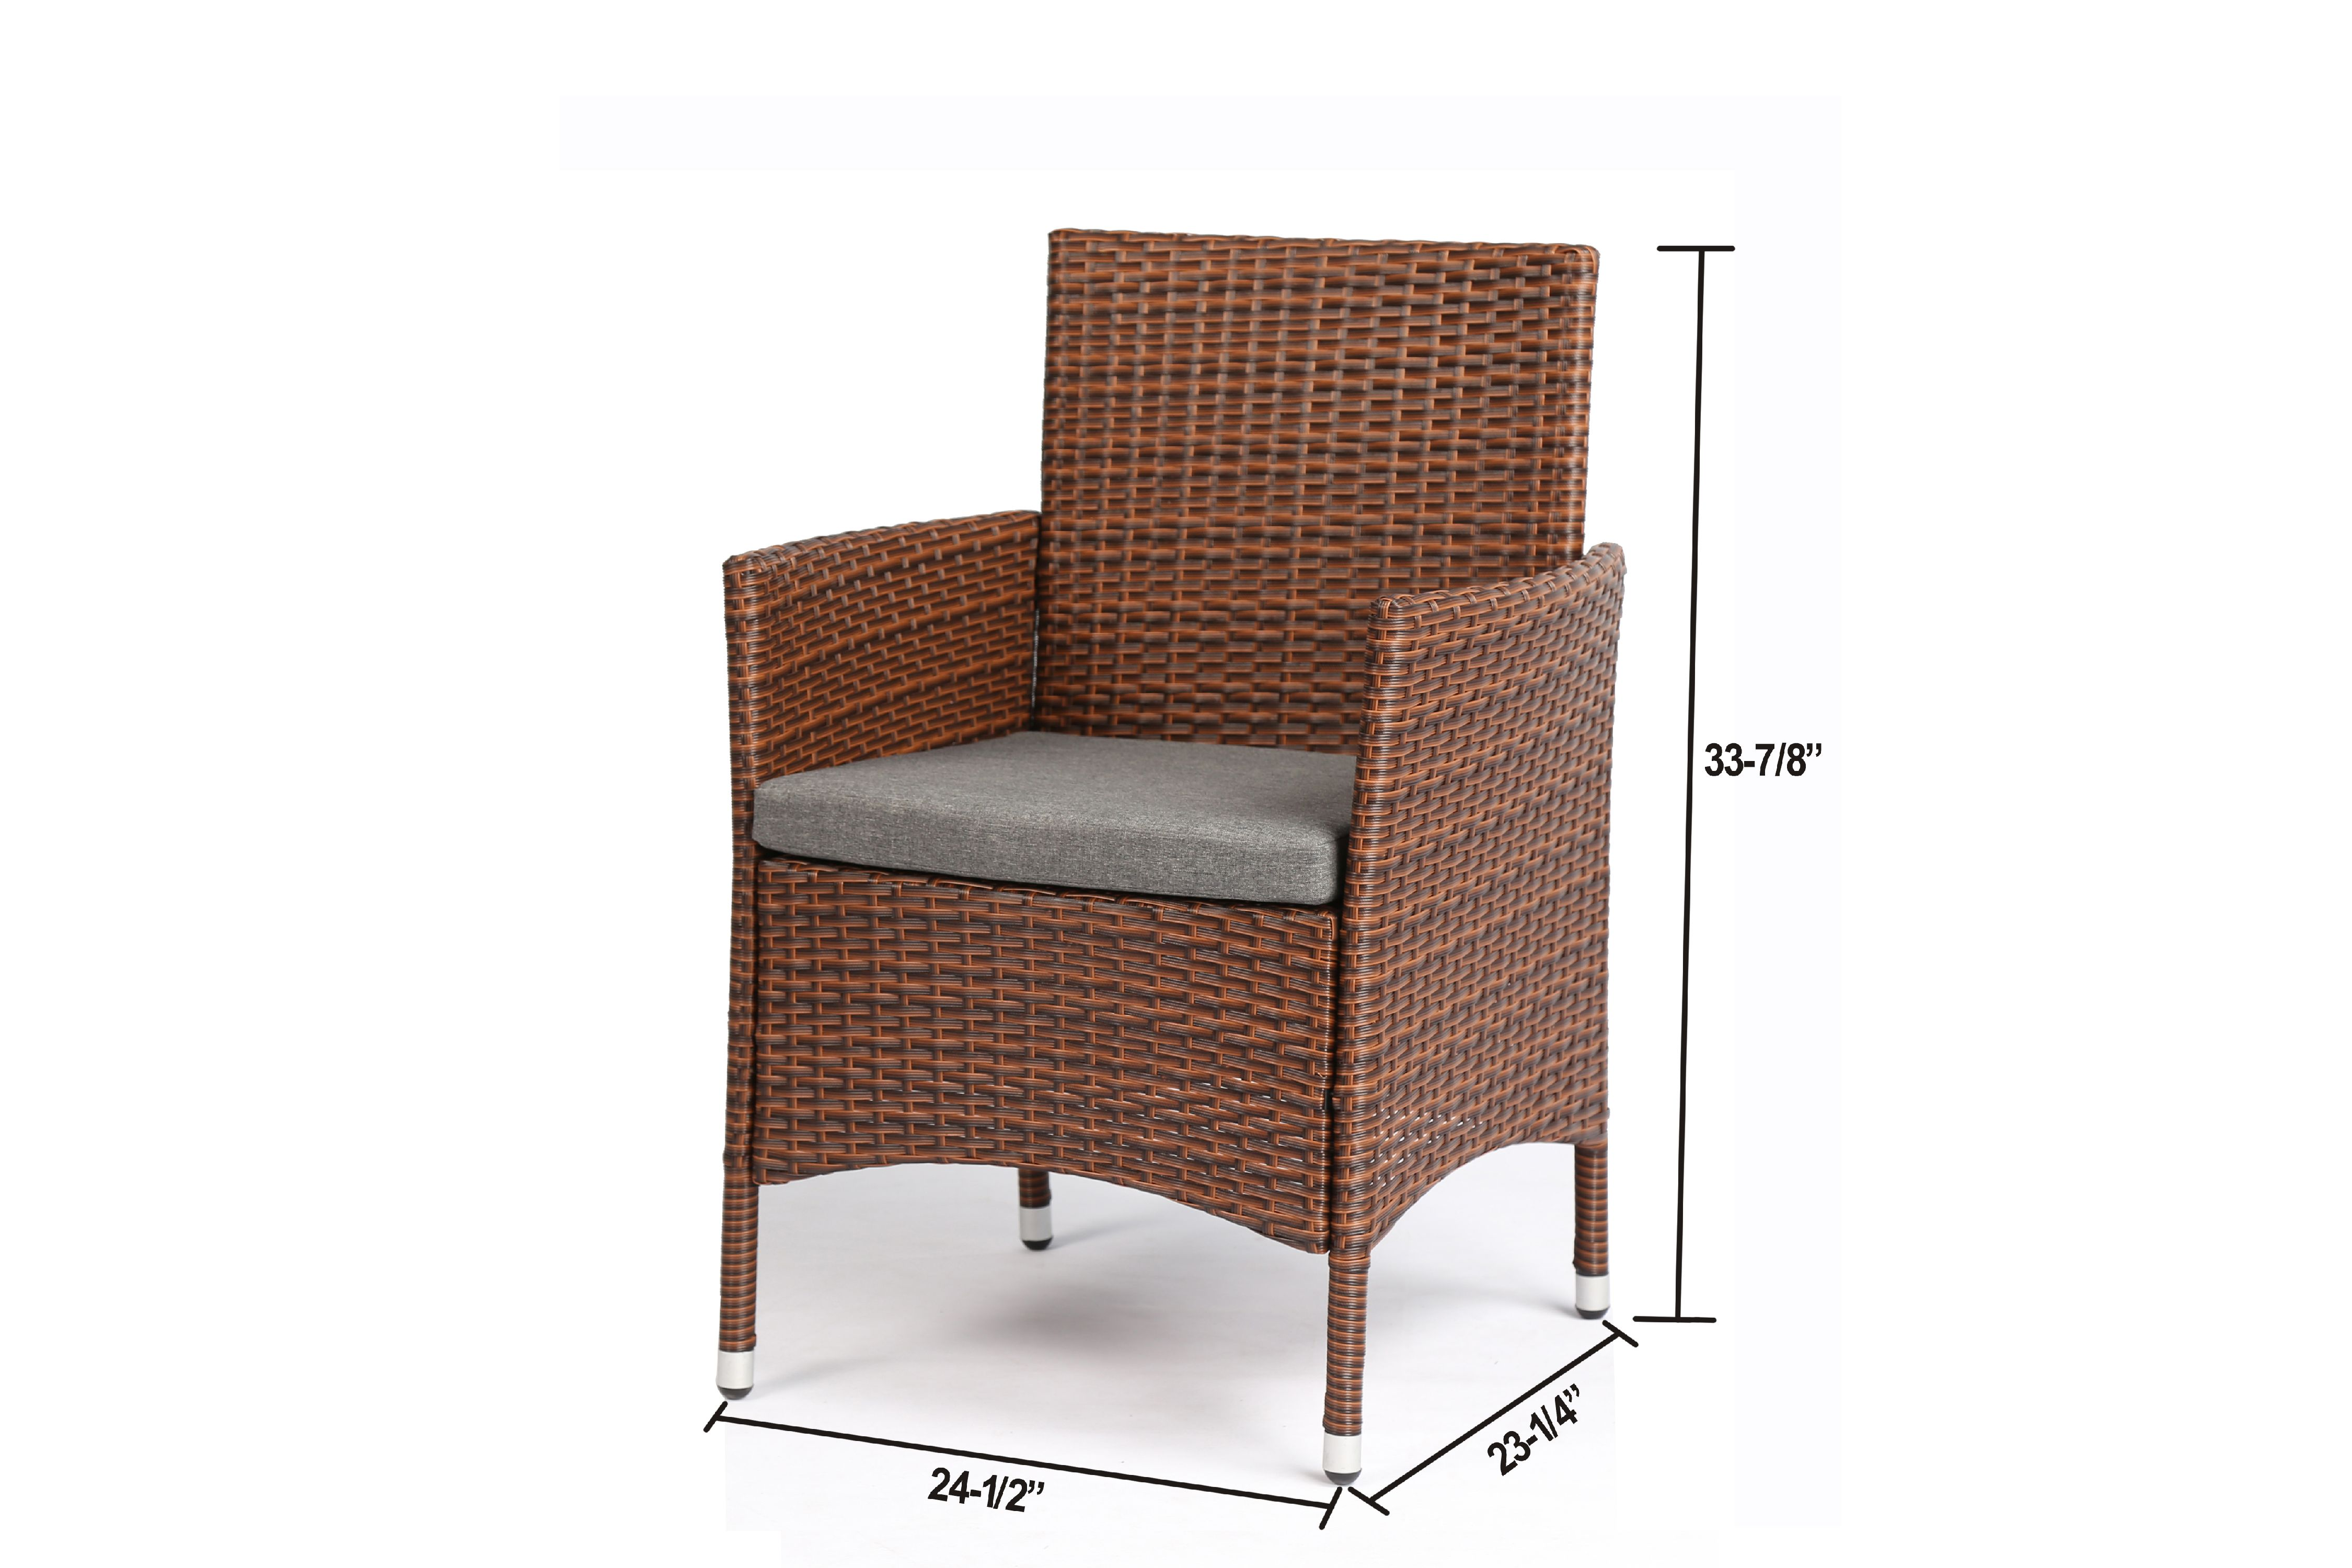 Rattan Rollo Baner Garden 8 Pieces Outdoor Furniture Complete Patio Wicker Rattan Garden Set Brown N68 Br 2